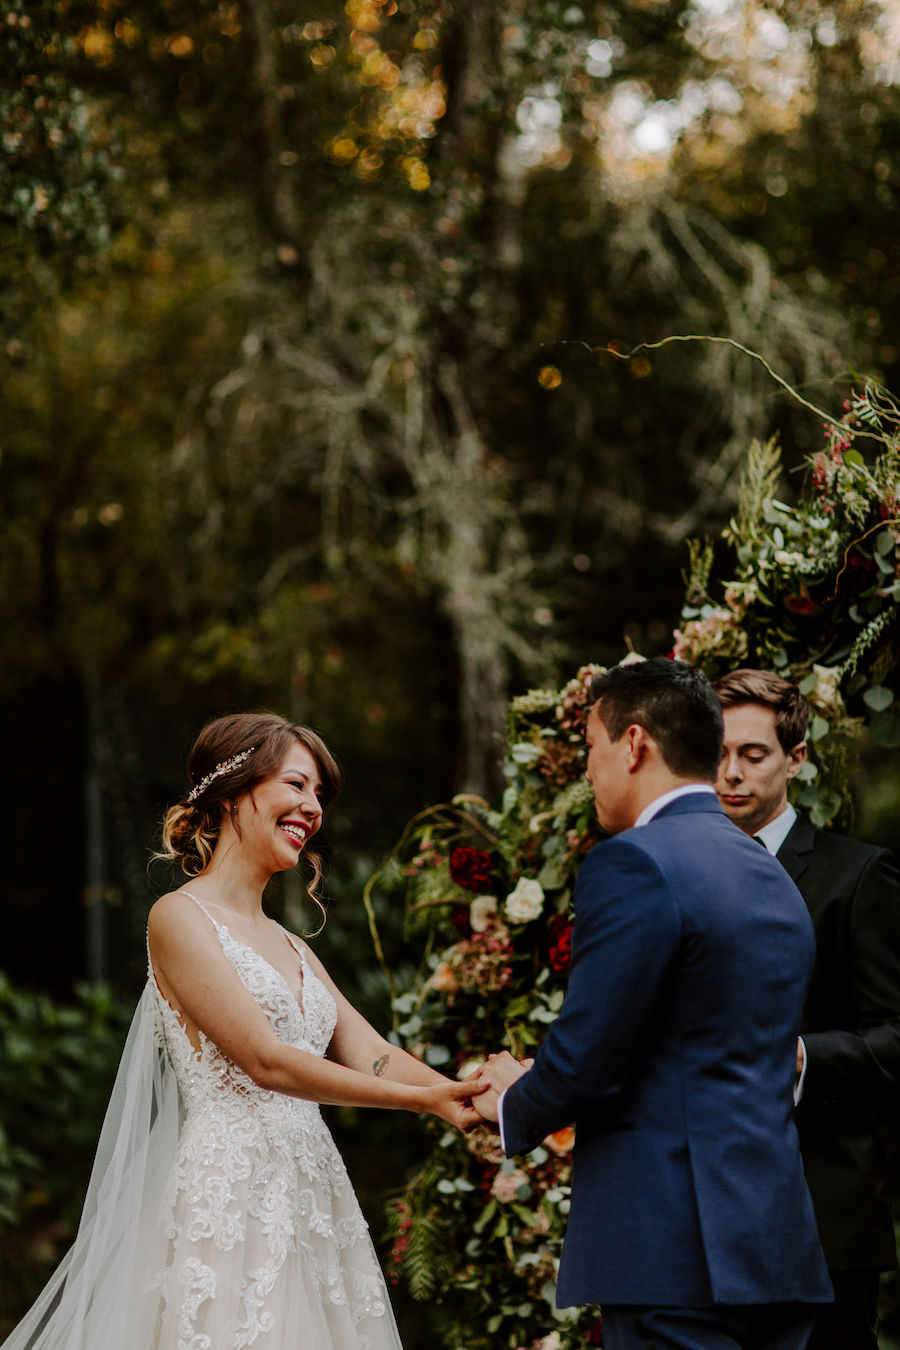 Enchanted Garden Wedding Featured on Confetti Daydreams53.jpg